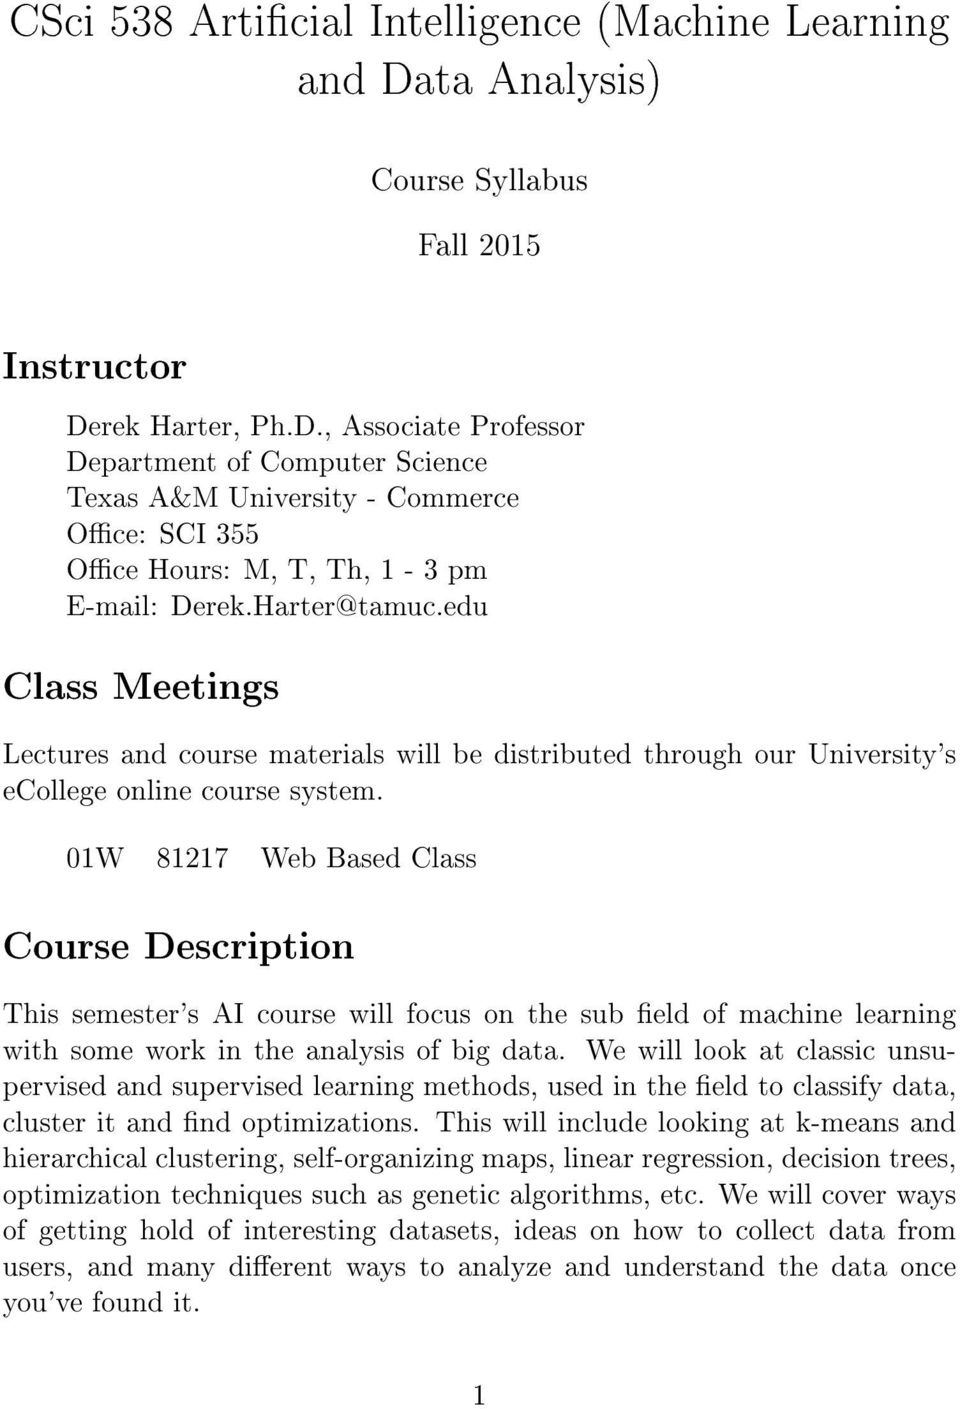 01W 81217 Web Based Class Course Description This semester's AI course will focus on the sub eld of machine learning with some work in the analysis of big data.